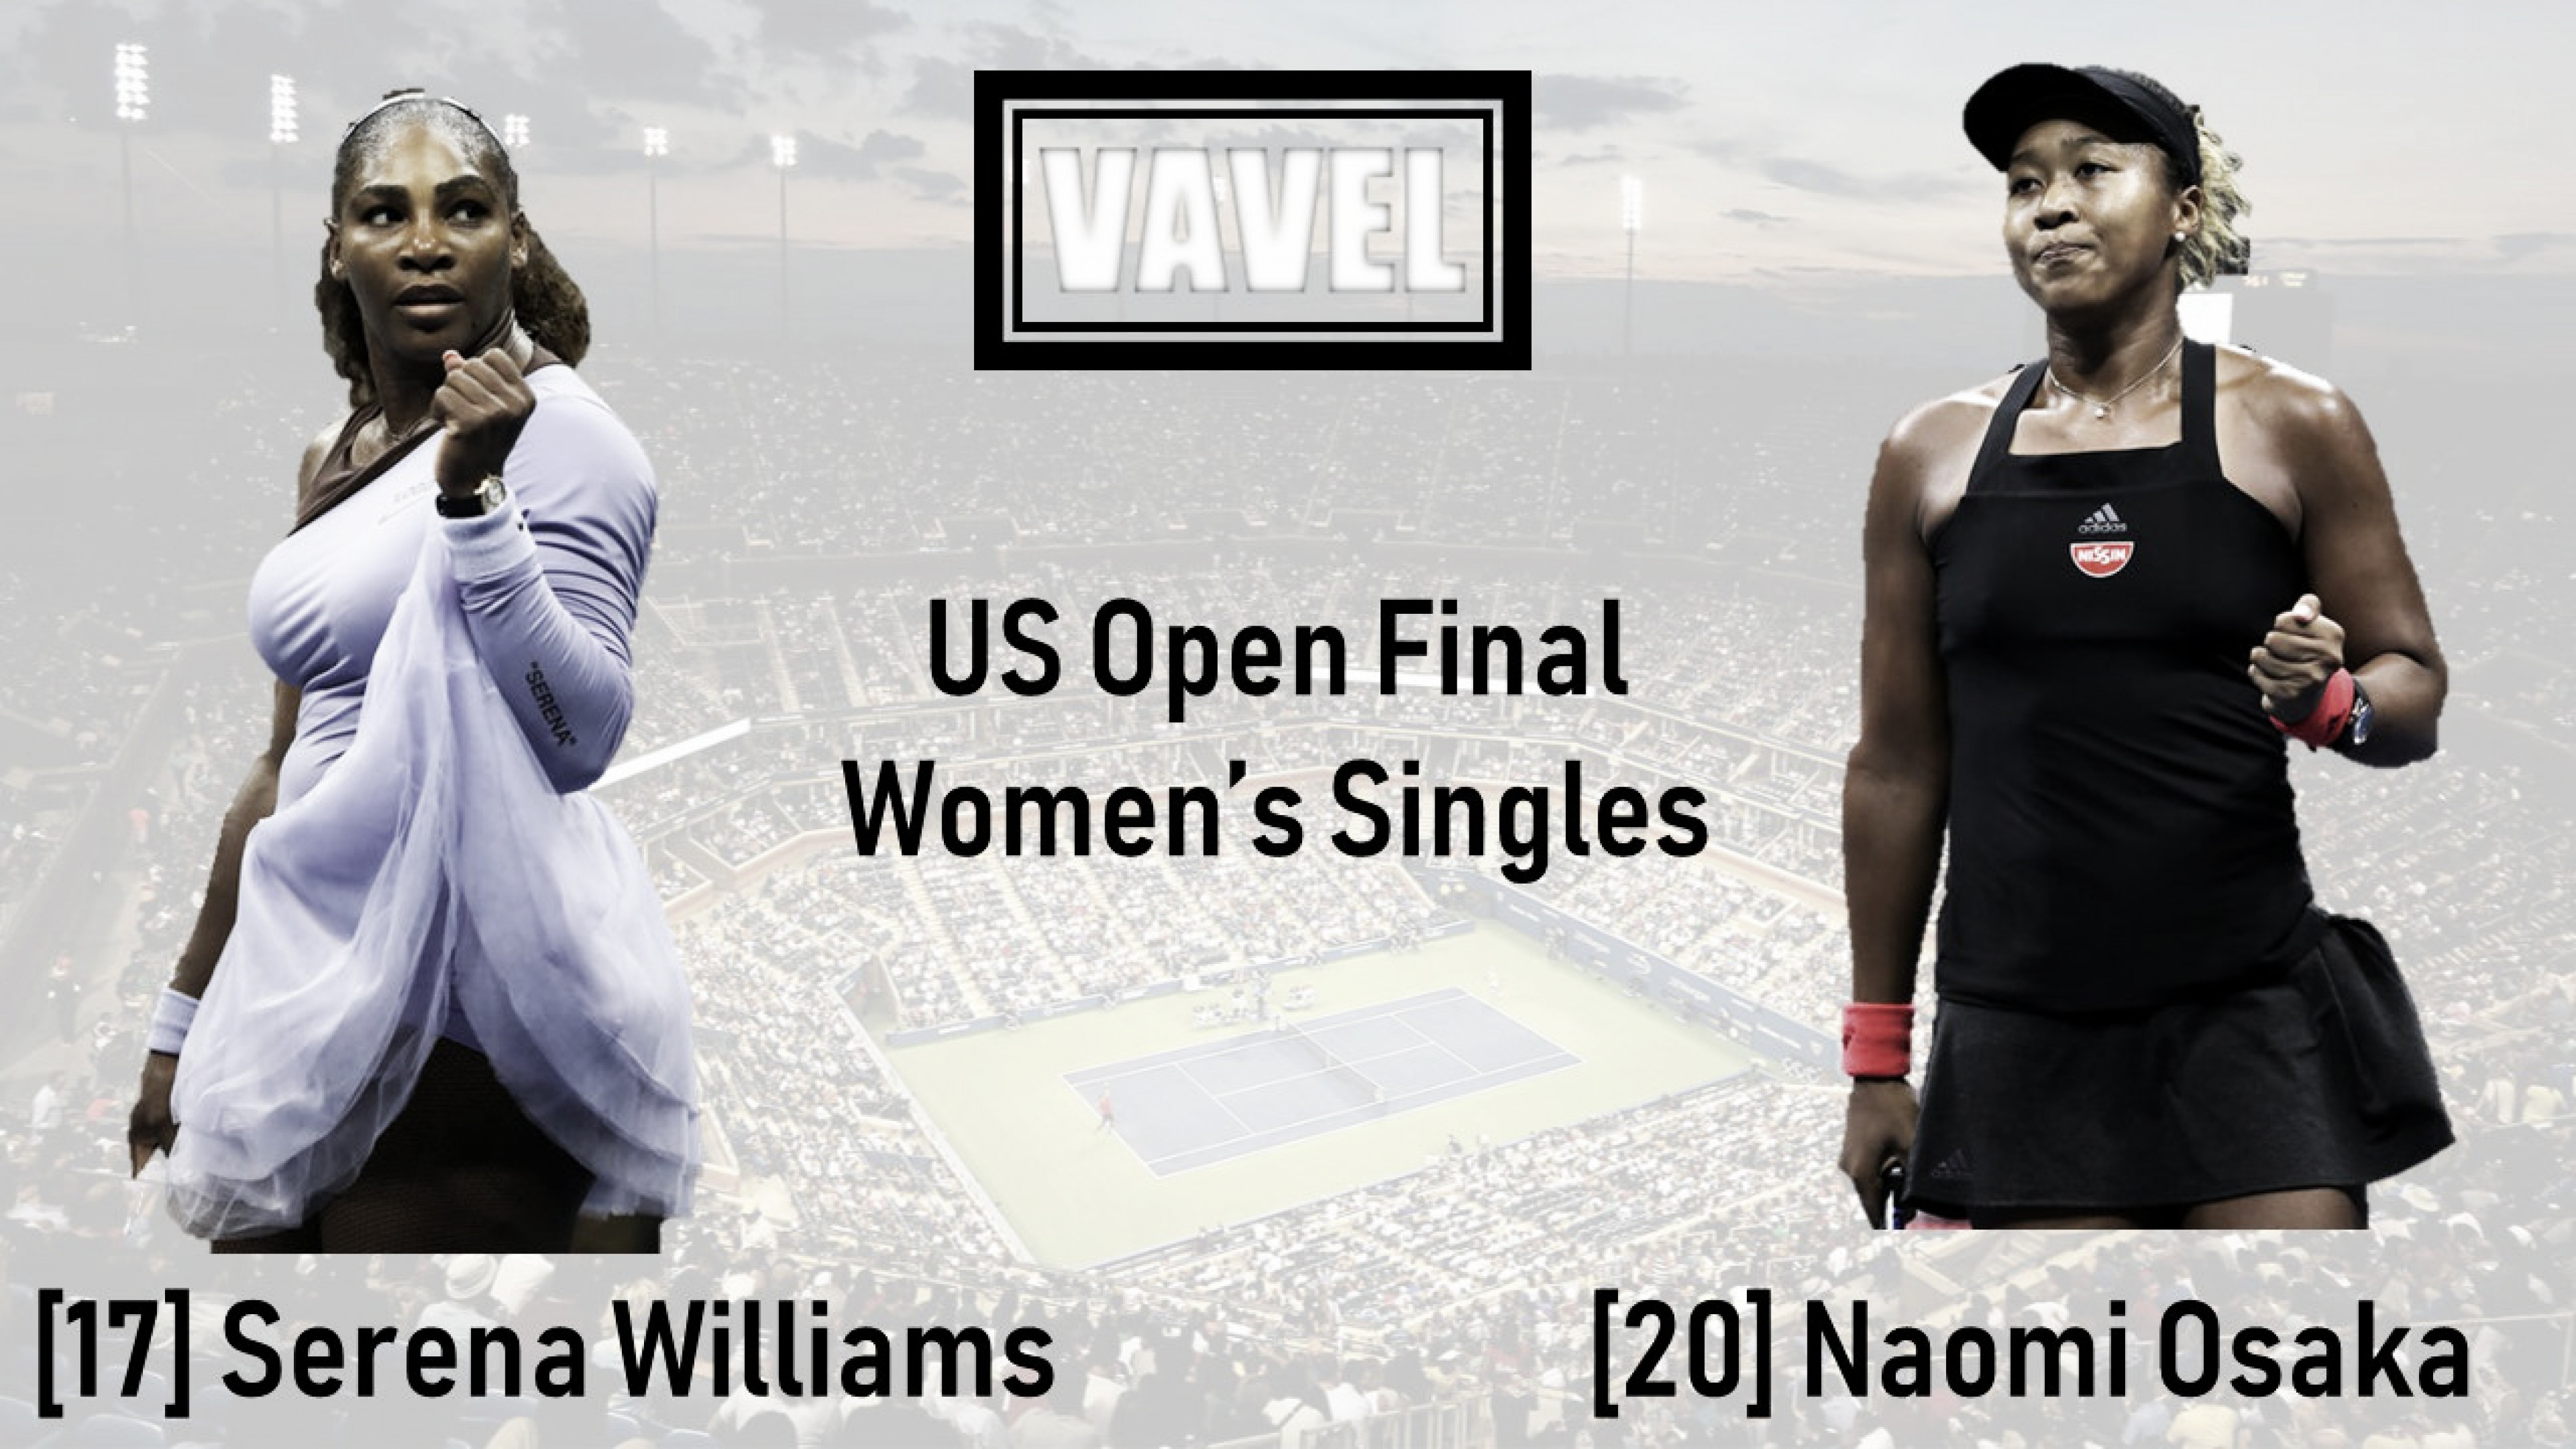 Serena Williams vs Naomi Osaka Live Stream Commentary and Updates of the 2018 US Open Final